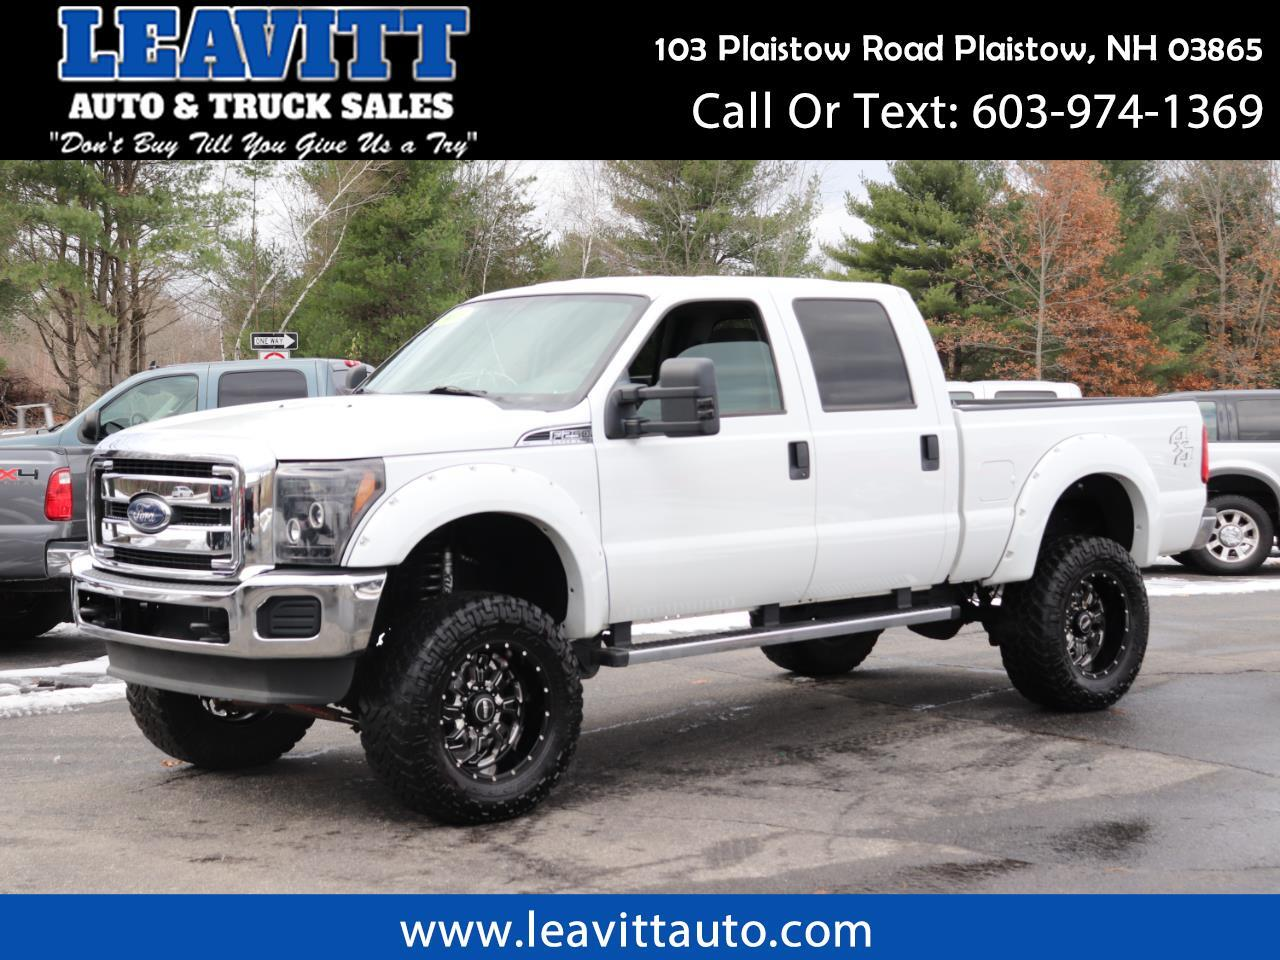 2013 Ford F-250 SD XLT CREW CAB 6.2L LIFTED 66K MILES!!!